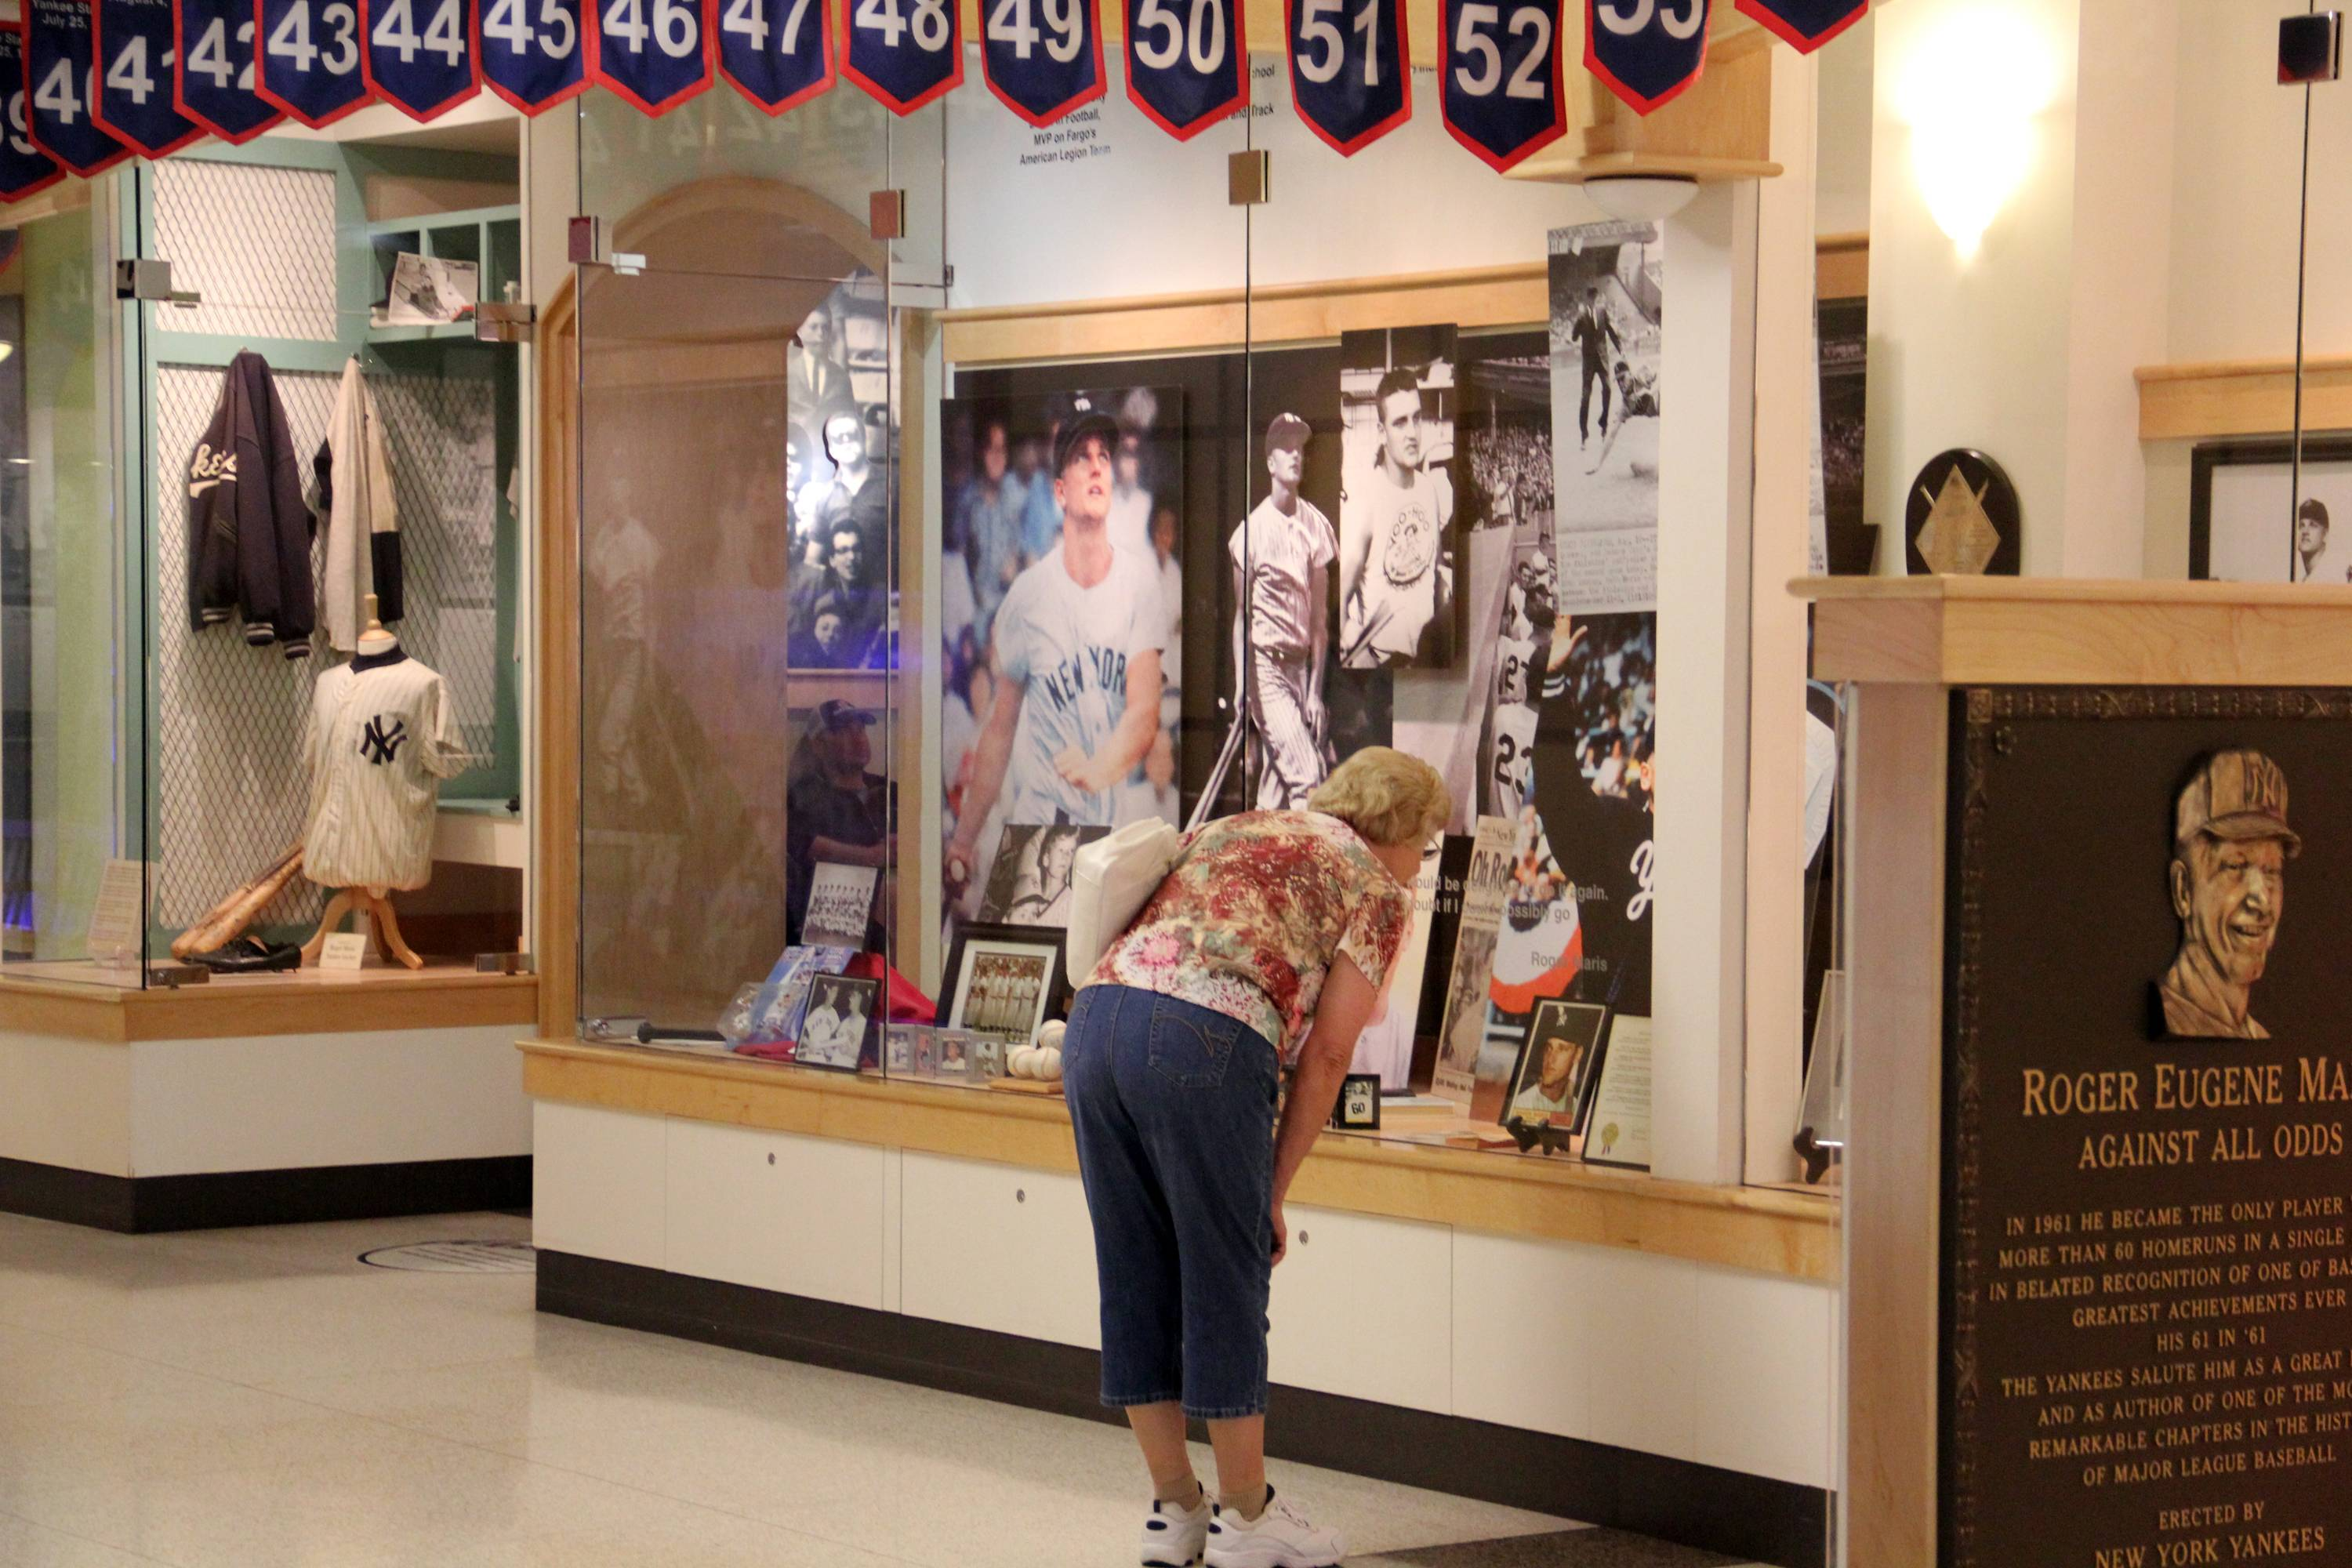 A woman looks at a display on baseball legend Roger Maris in the West Acres Mall in Fargo, N.D.